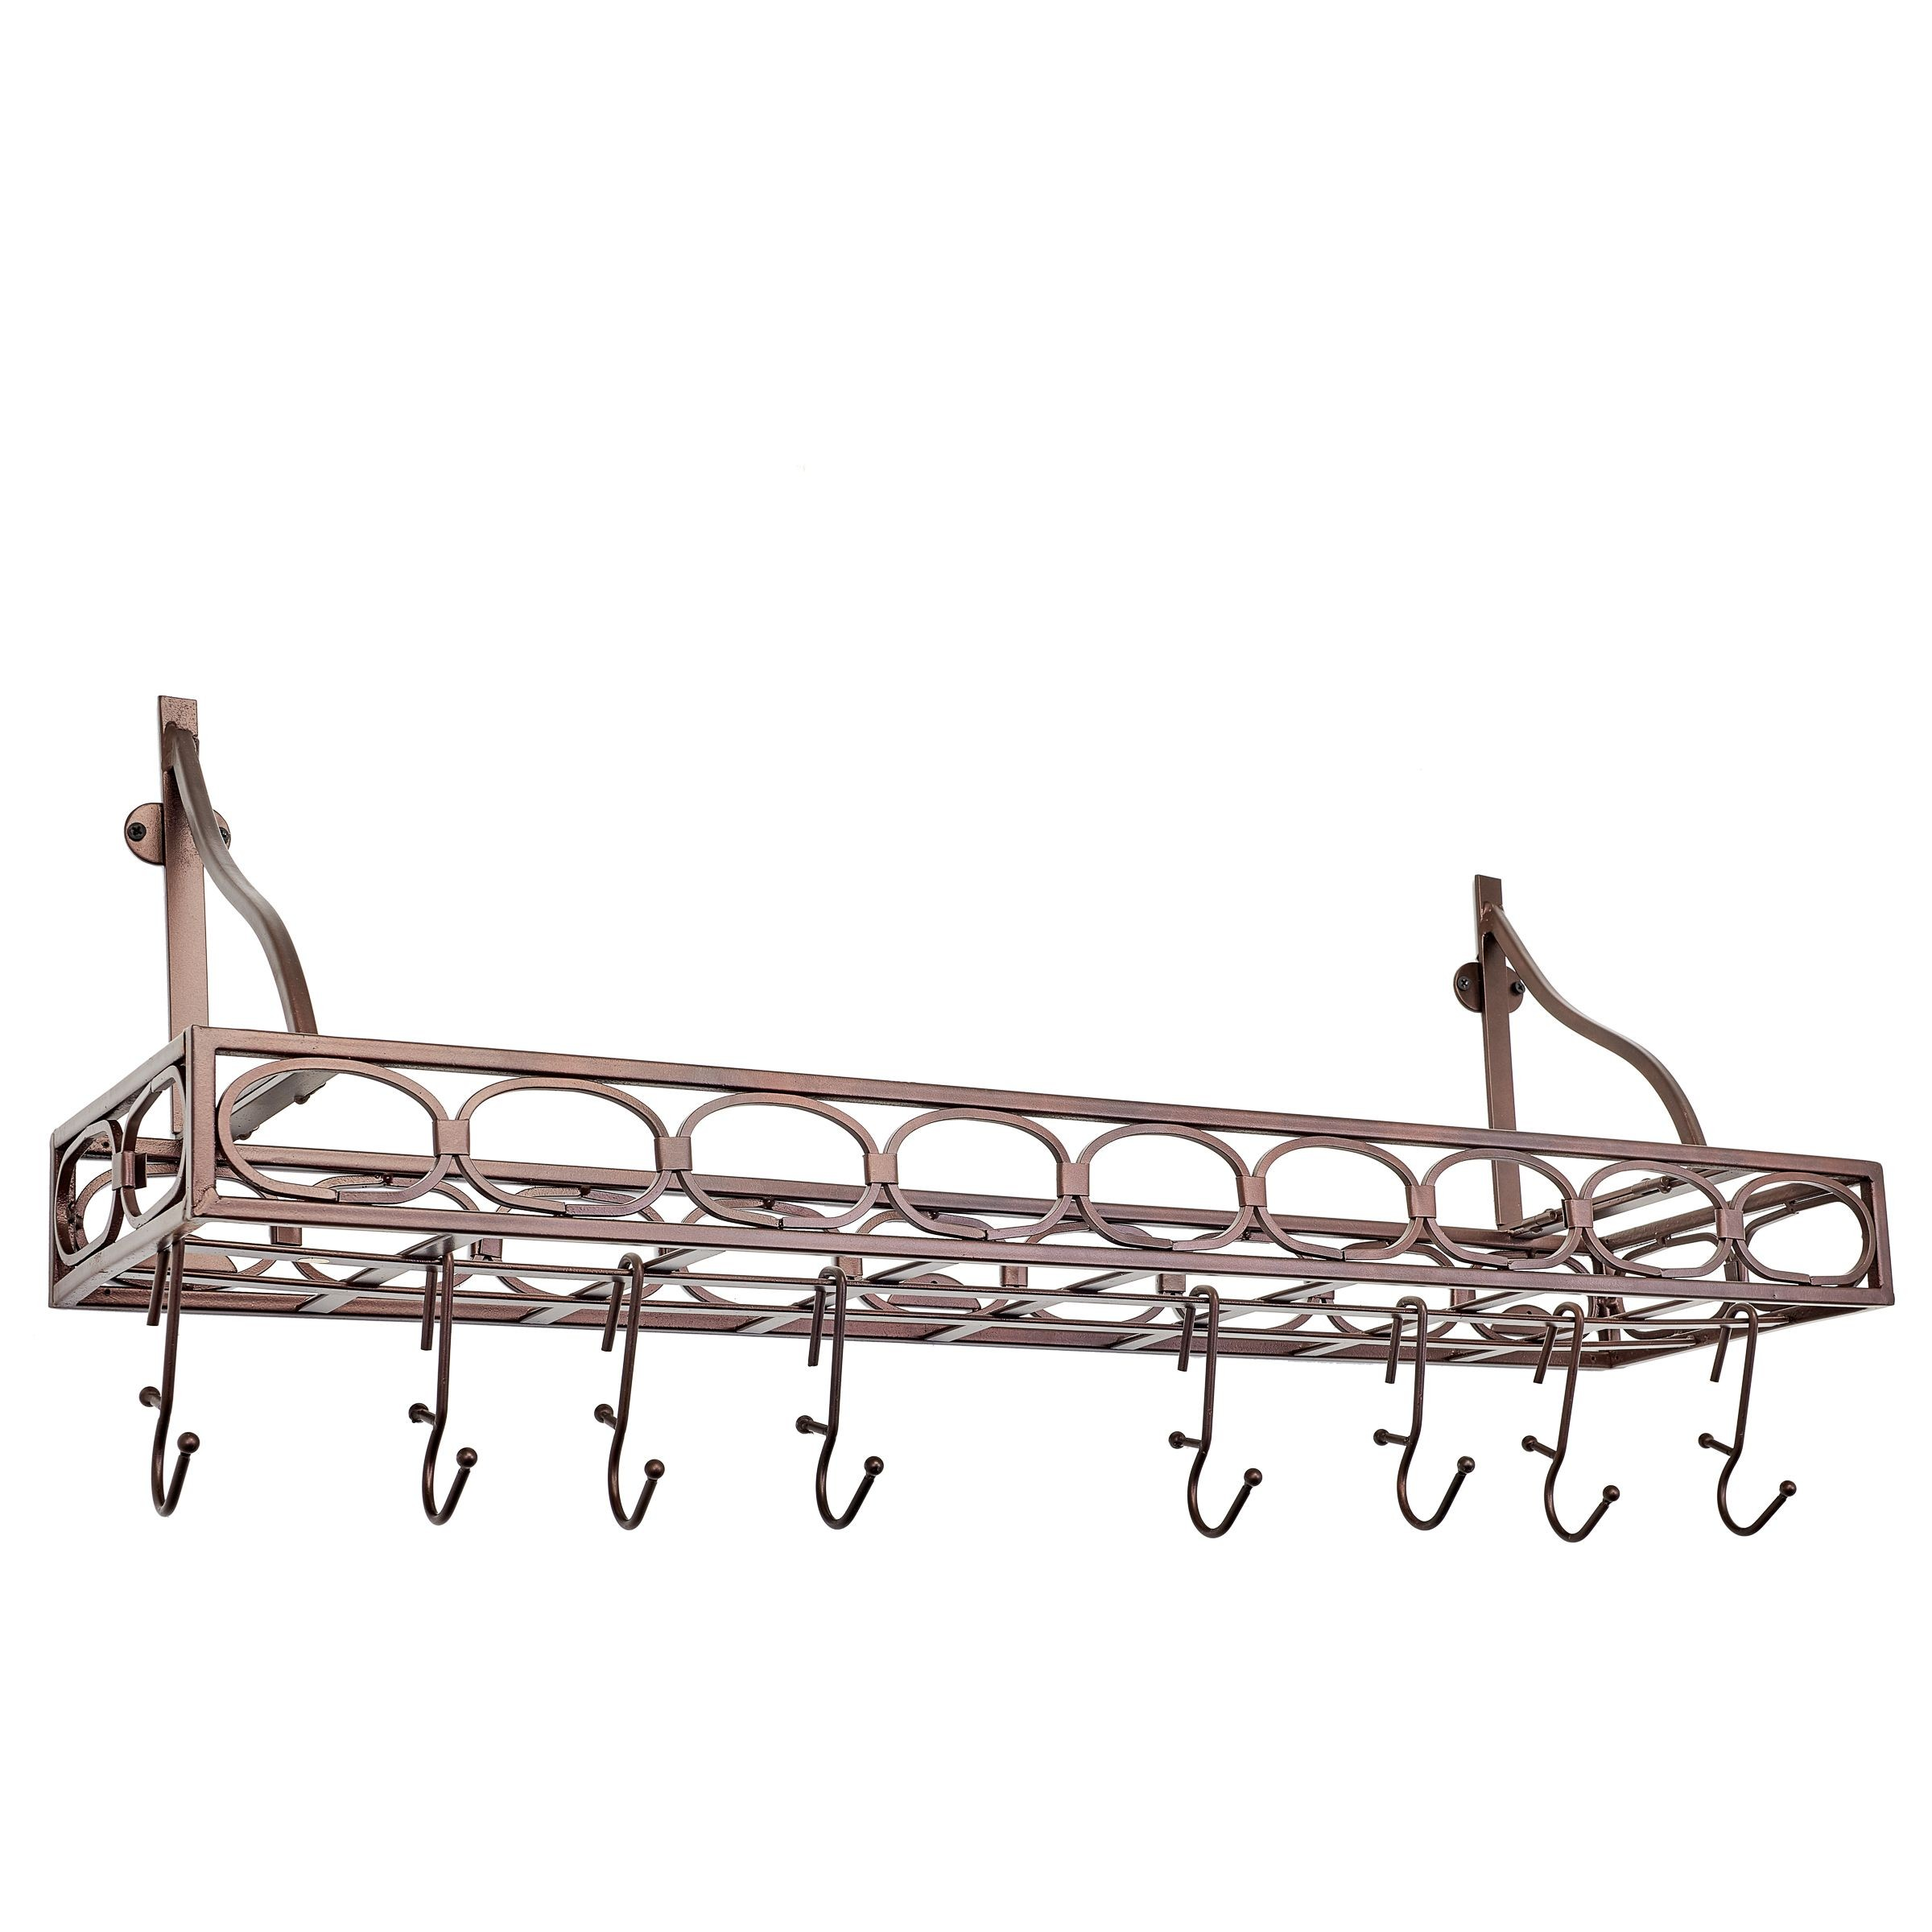 "Old Dutch International 103BZ Wall-Mount Bookshelf Pot Rack with 8 Hooks, Oiled Bronze, 36 1/4"" x 9"" x 12"""